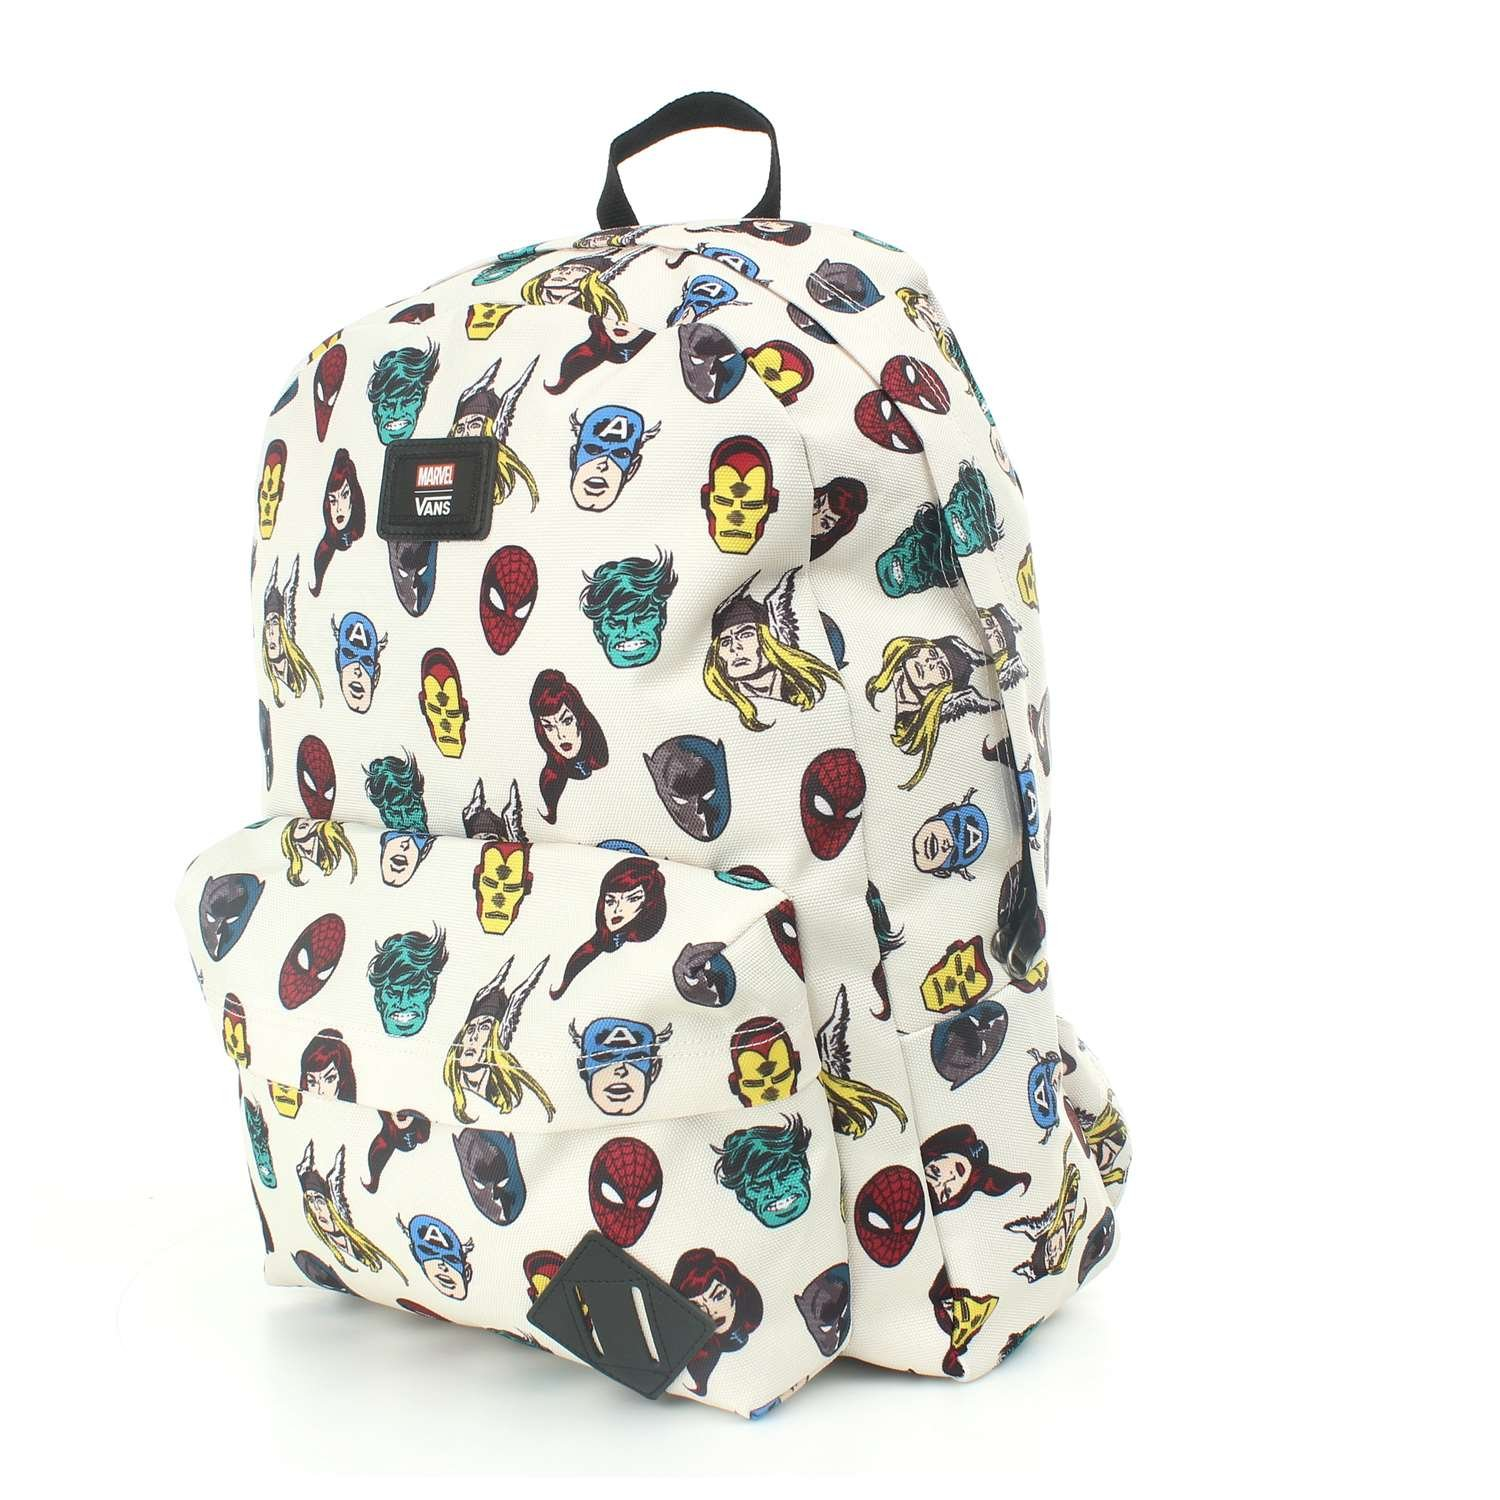 VANS Old Skool II Backpack Superheroes (MARVEL) Schoolbag VN000ONIRUB VANS  MARVEL Bags  Amazon.co.uk  Clothing 274feaaec1bfa